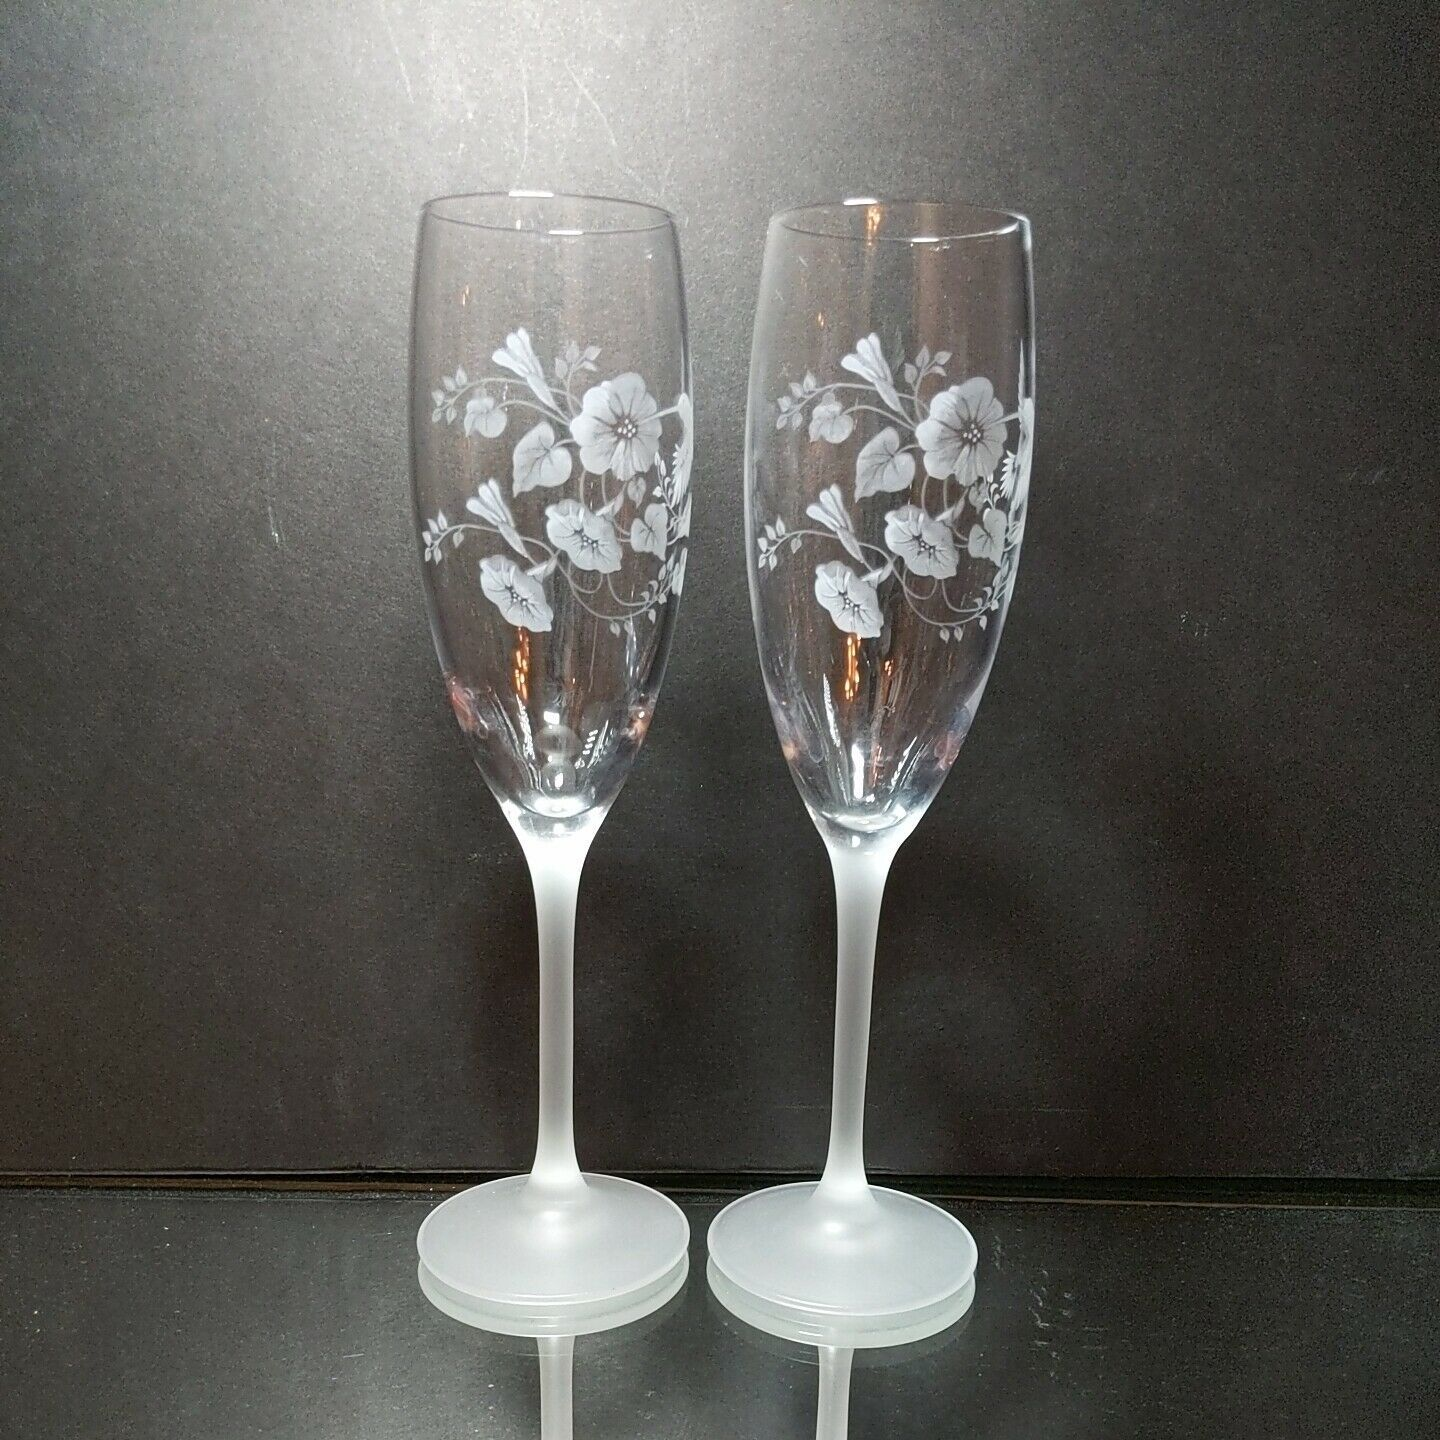 2 (Two) AVON HUMMINGBIRD Etched Crystal Champagne Flutes Frosted Stems France